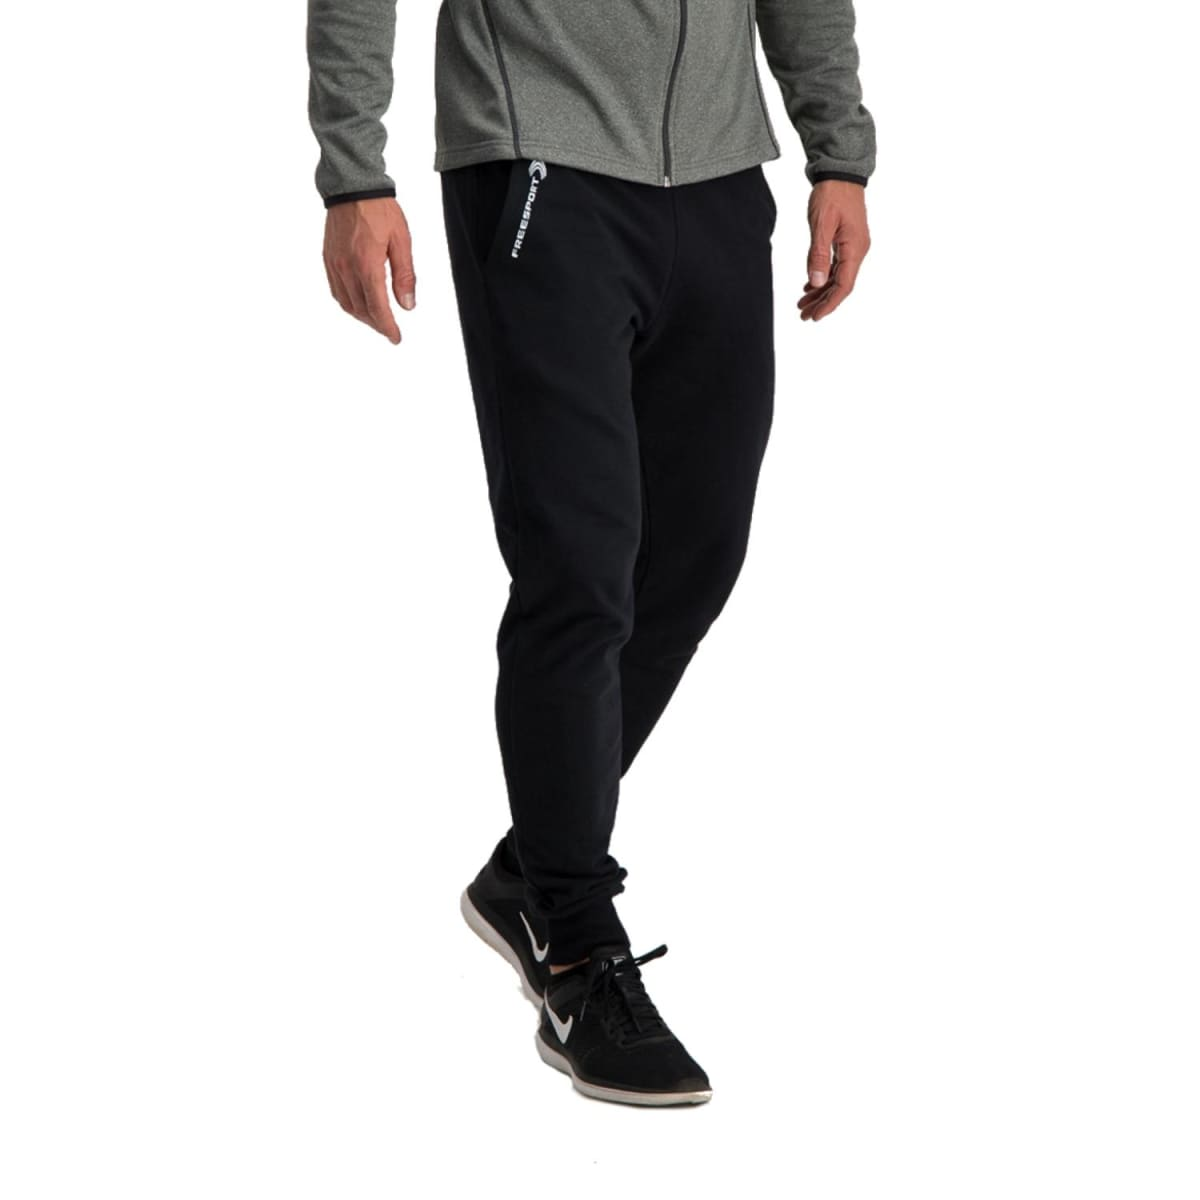 d139d1b1fa49 Freesport Men s Chill Out Jogger